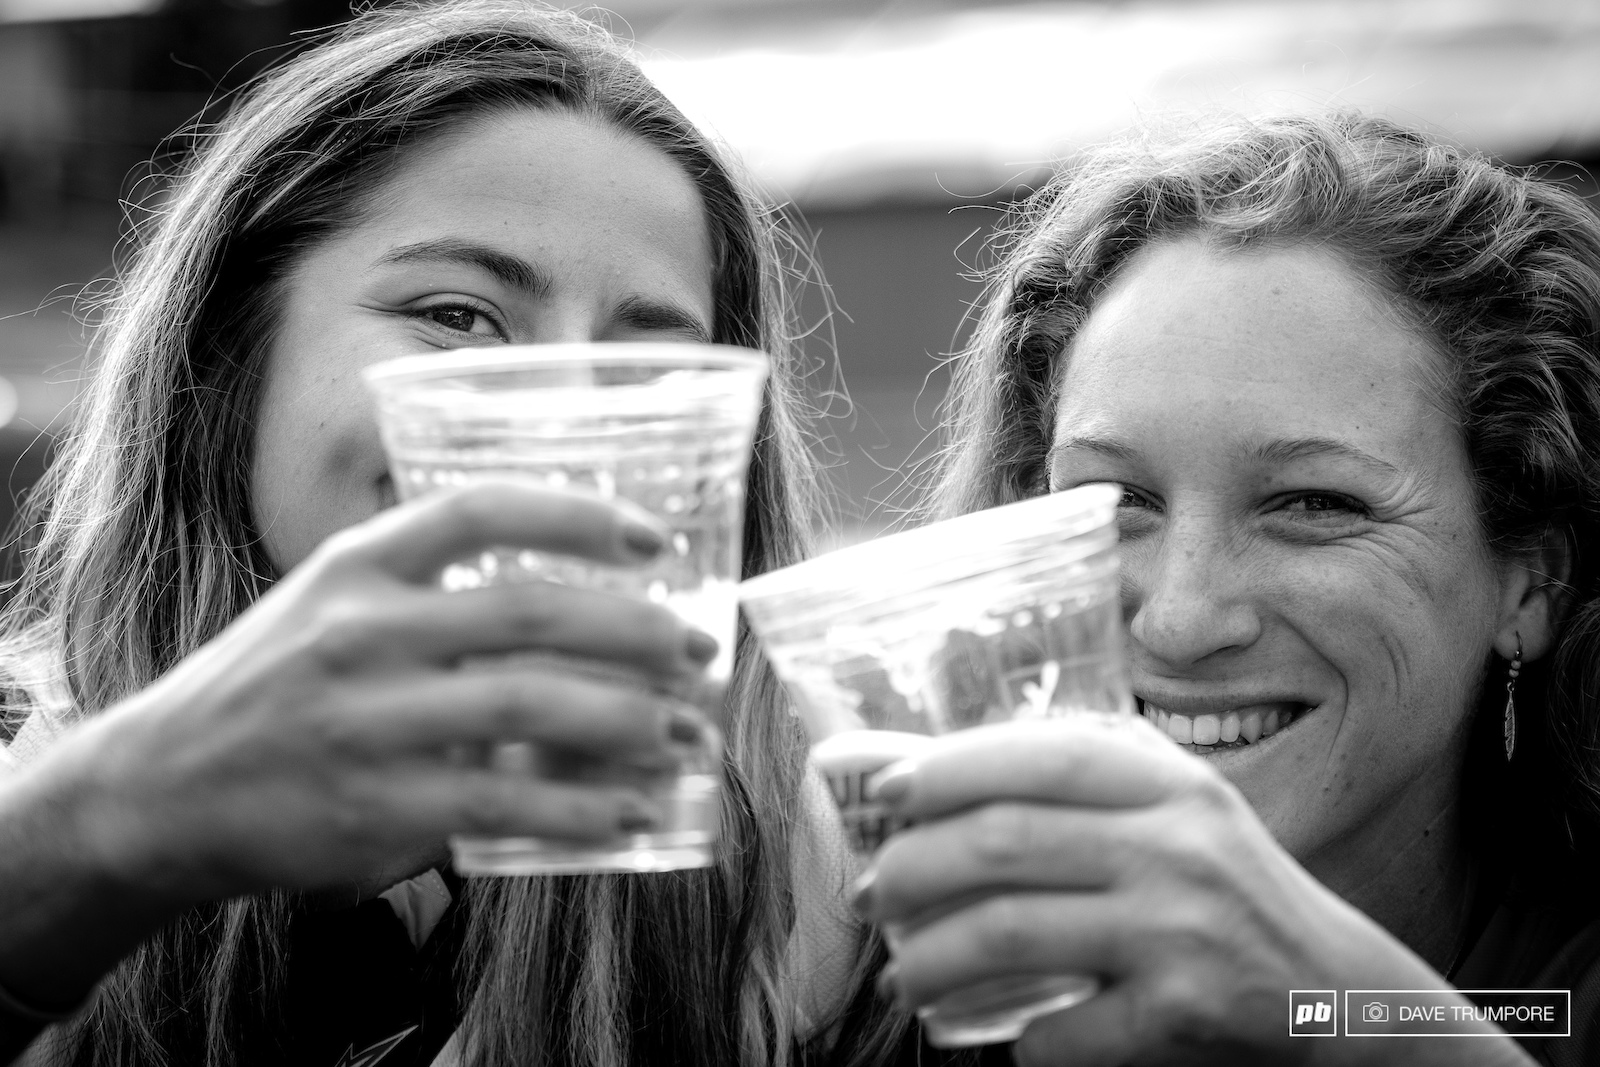 Isabeau Courdurier and Noga Korem rehydrate with some cold beer after a very long and hot weekend of racing in Aspen.